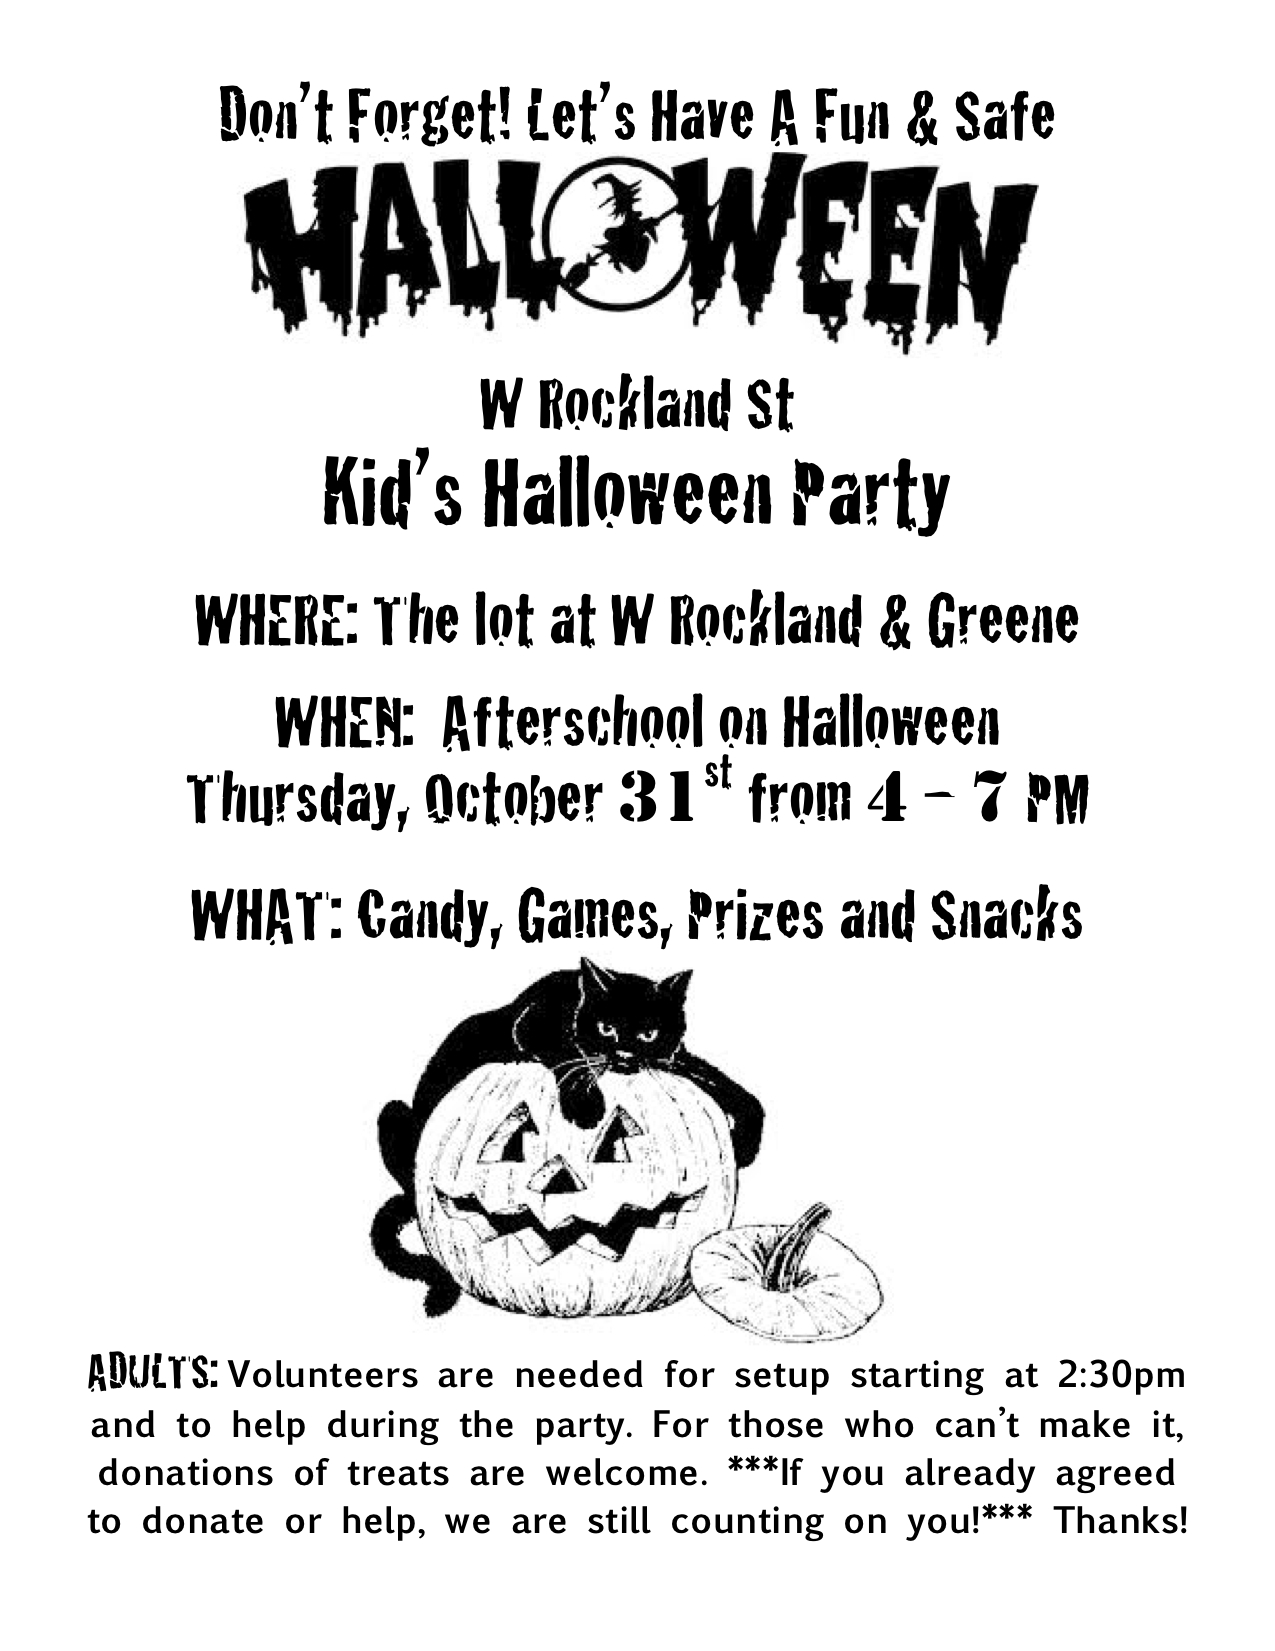 Boo! West Rockland Street Kid's Halloween Party | The W Rockland ...